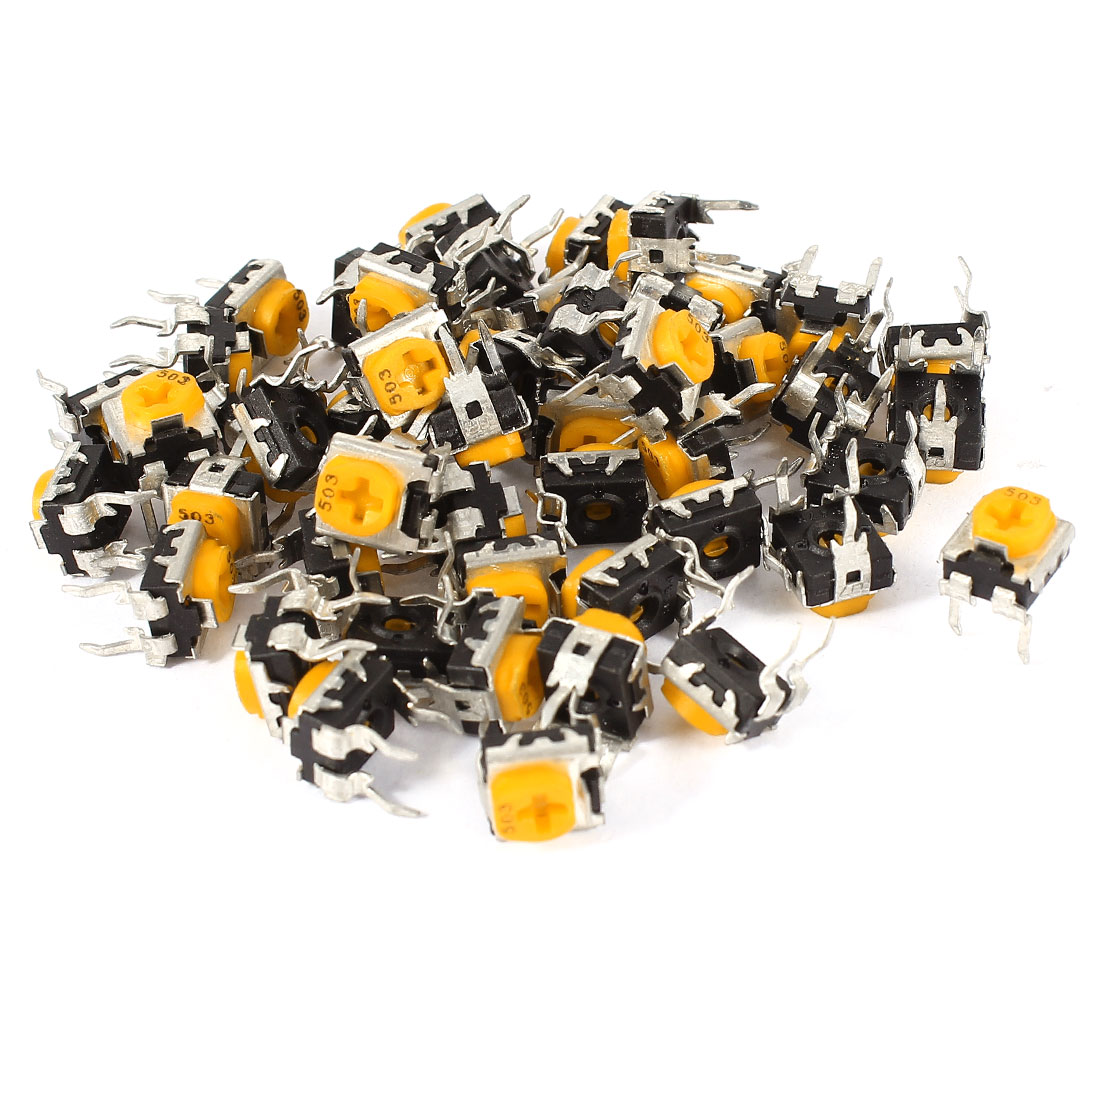 50 Pcs Variable Resistors Trimmer Potentiometers 503 50K Ohm